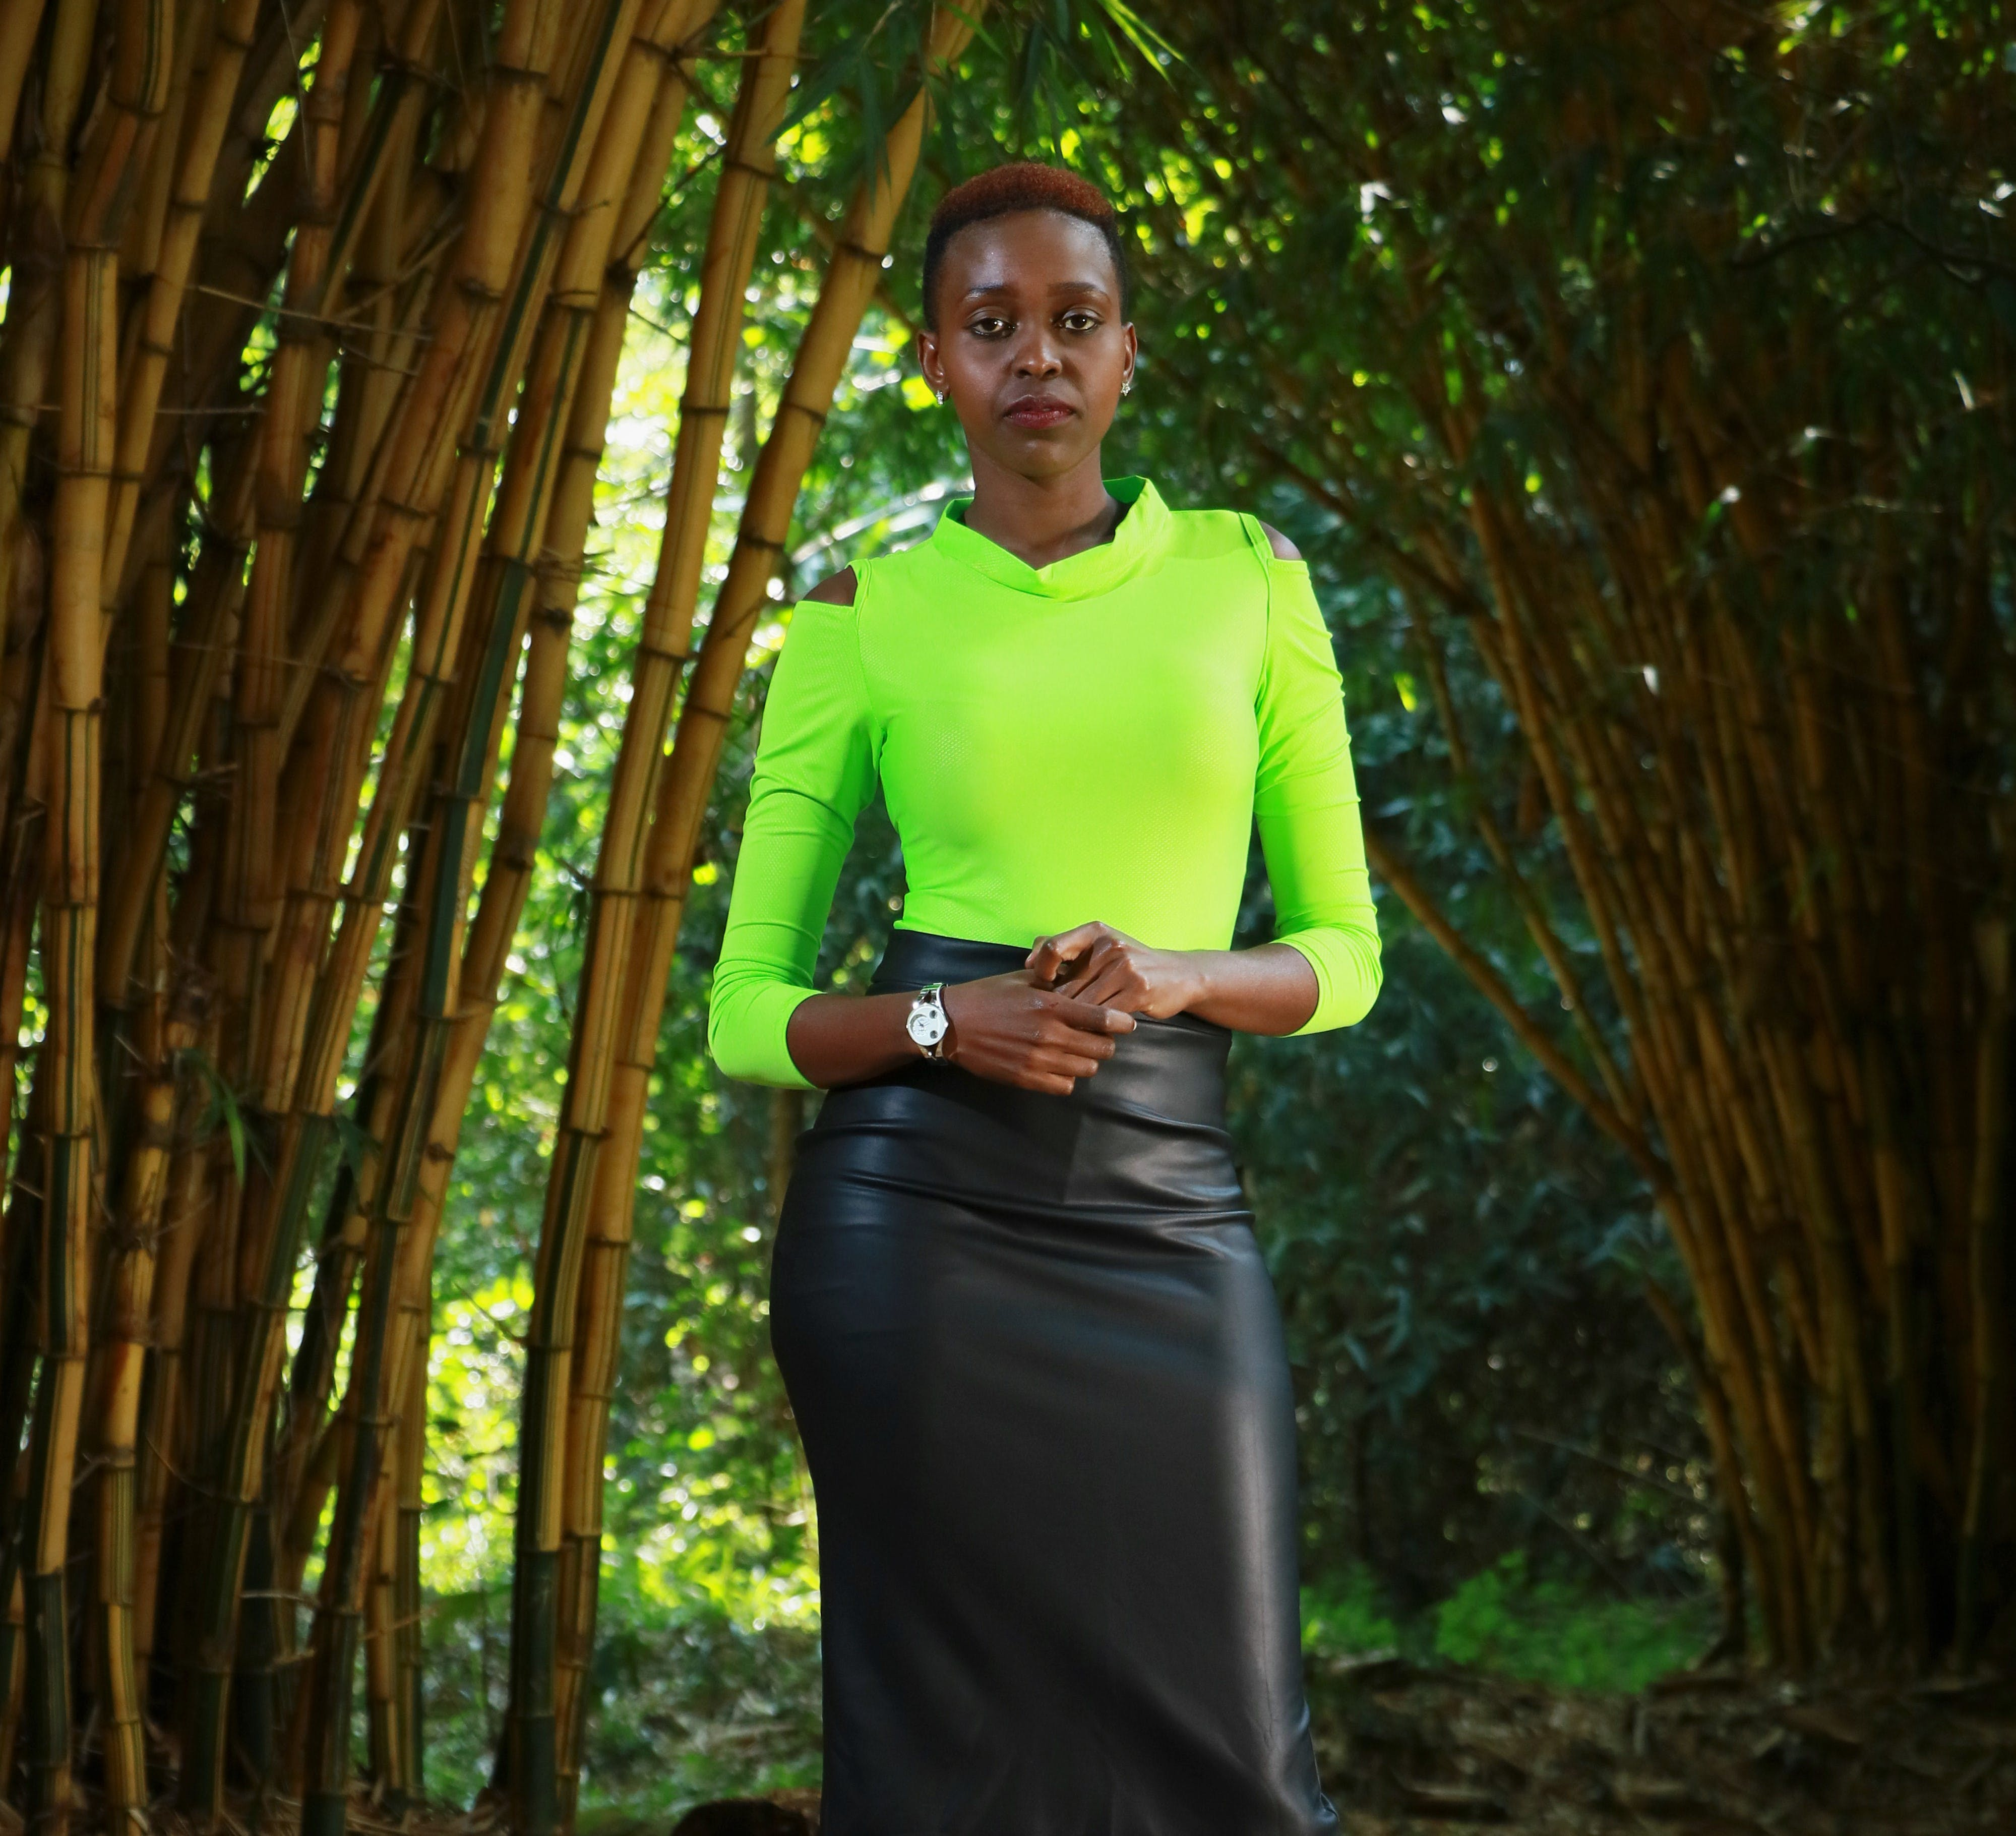 Woman Standing Beside Bamboo Trees